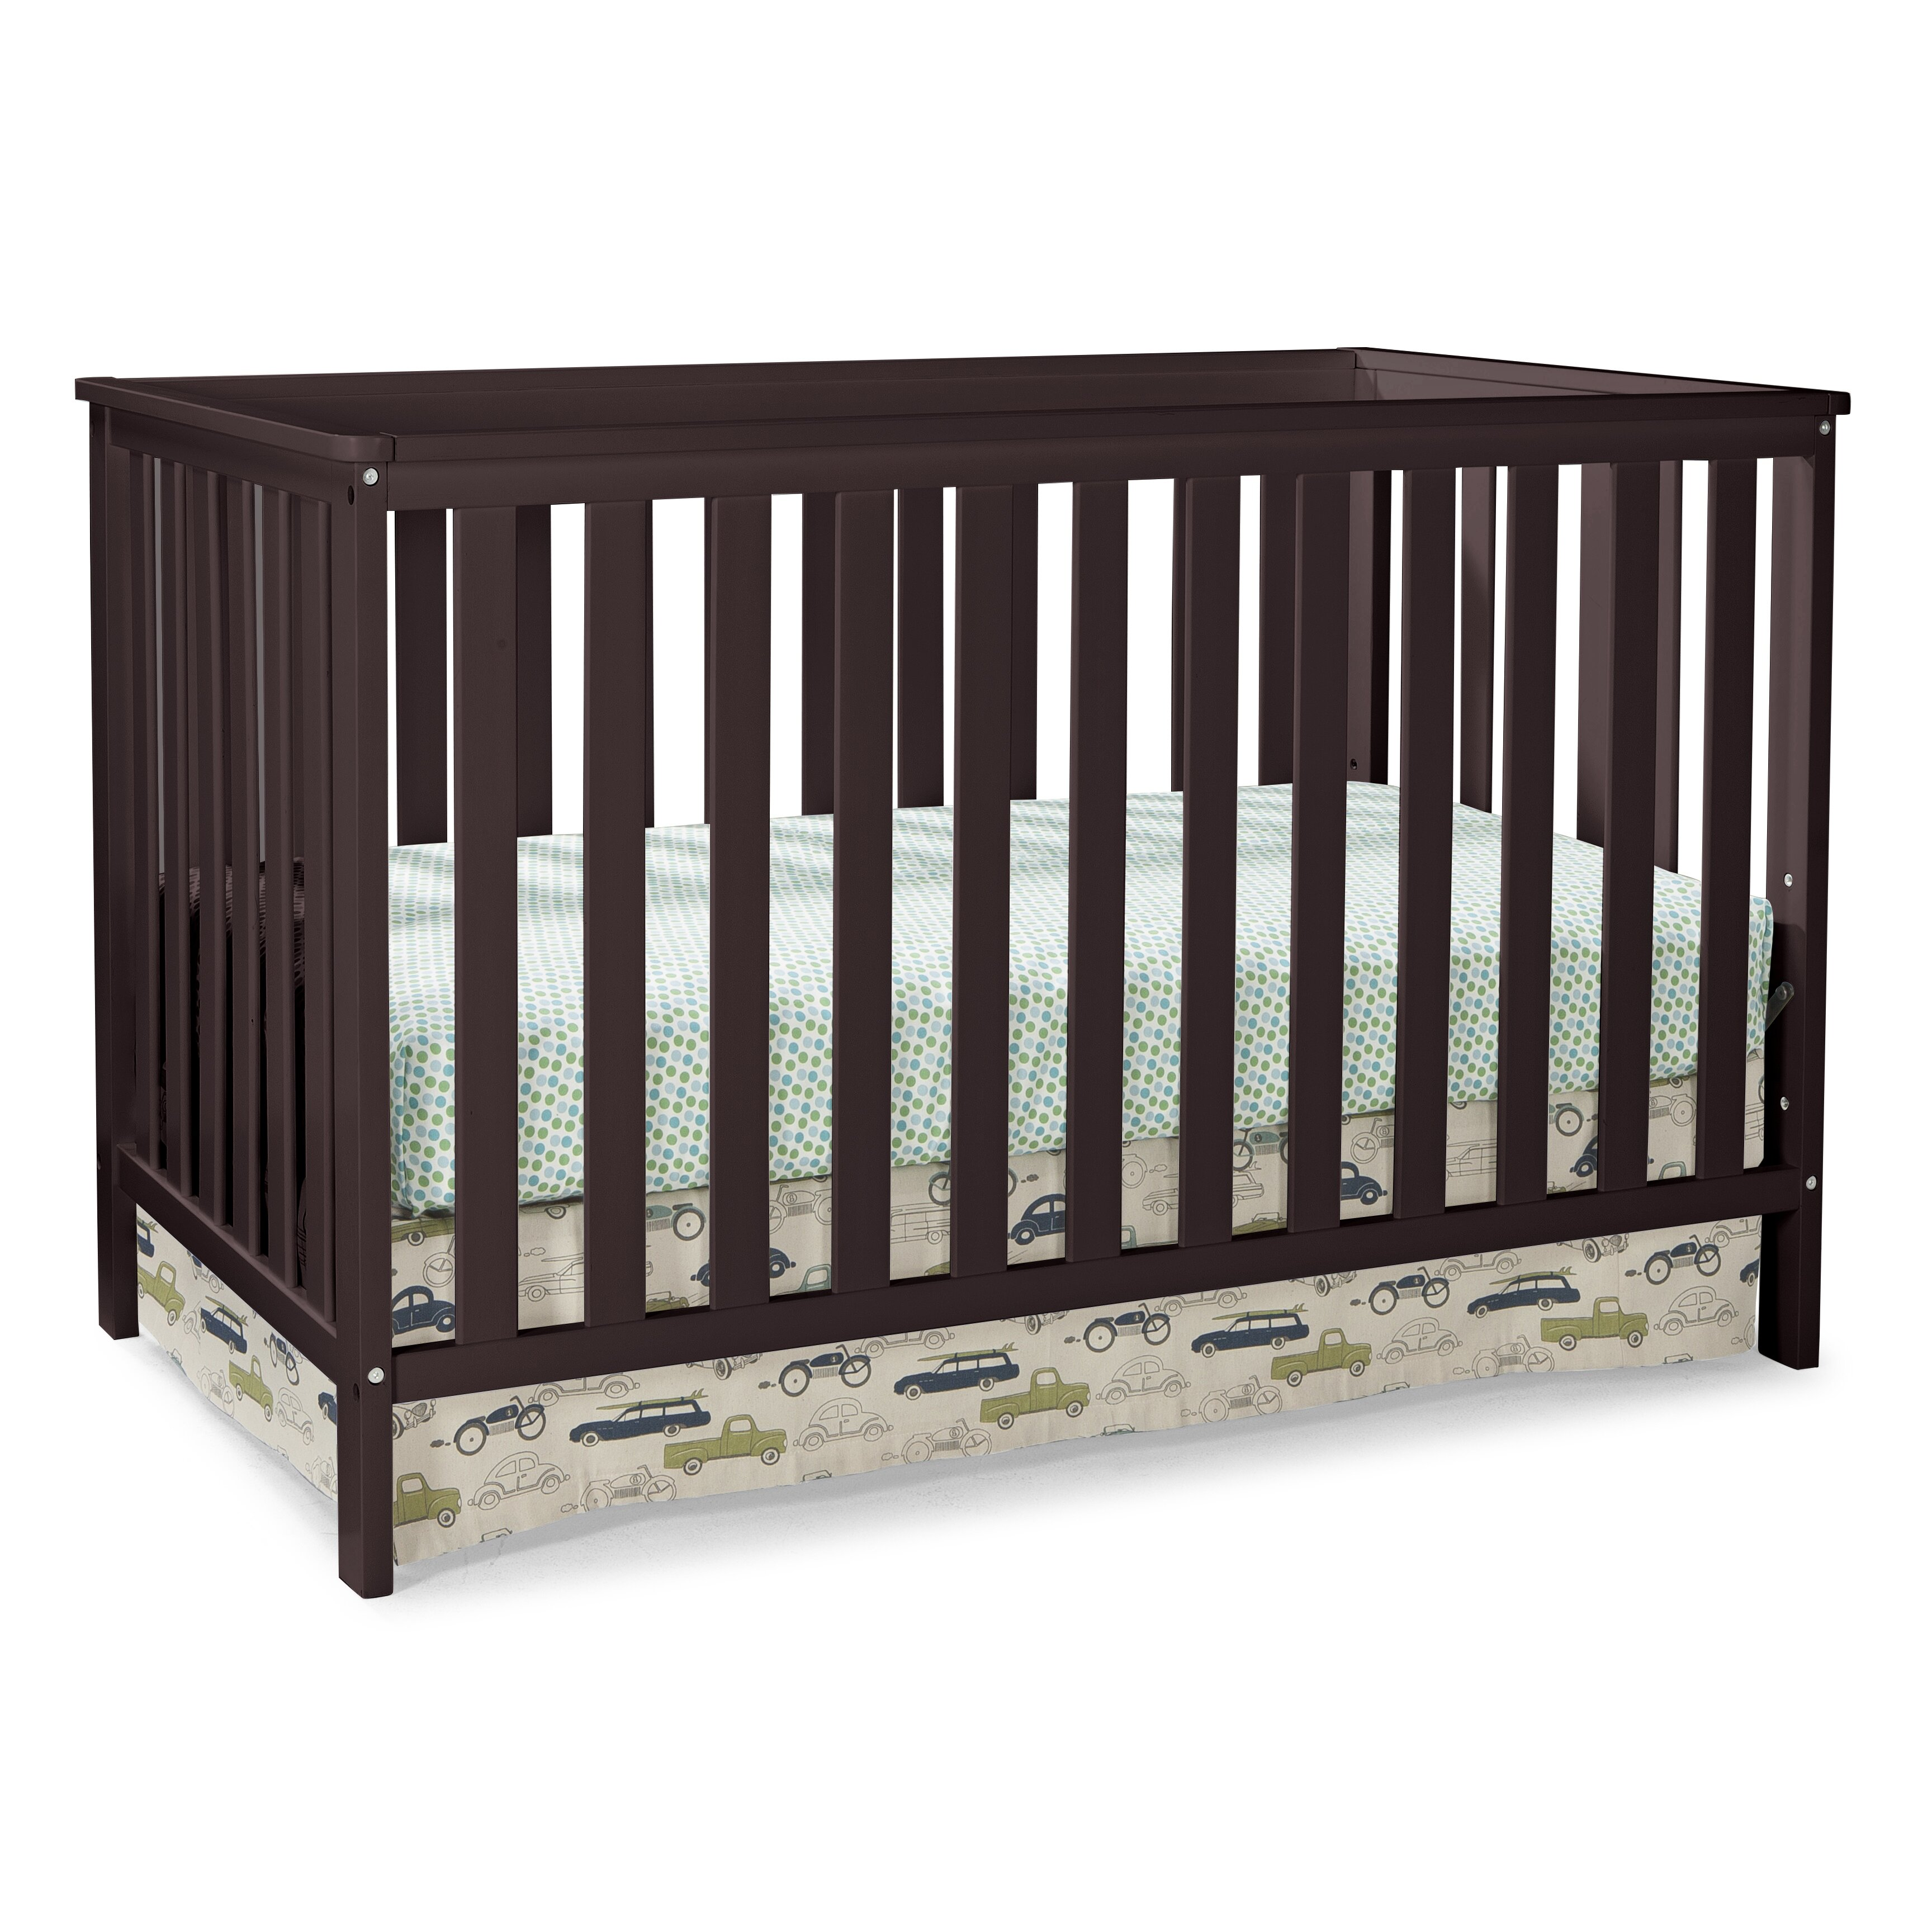 Storkcraft rosland 3 in 1 convertible crib reviews wayfair for Child craft convertible crib instructions